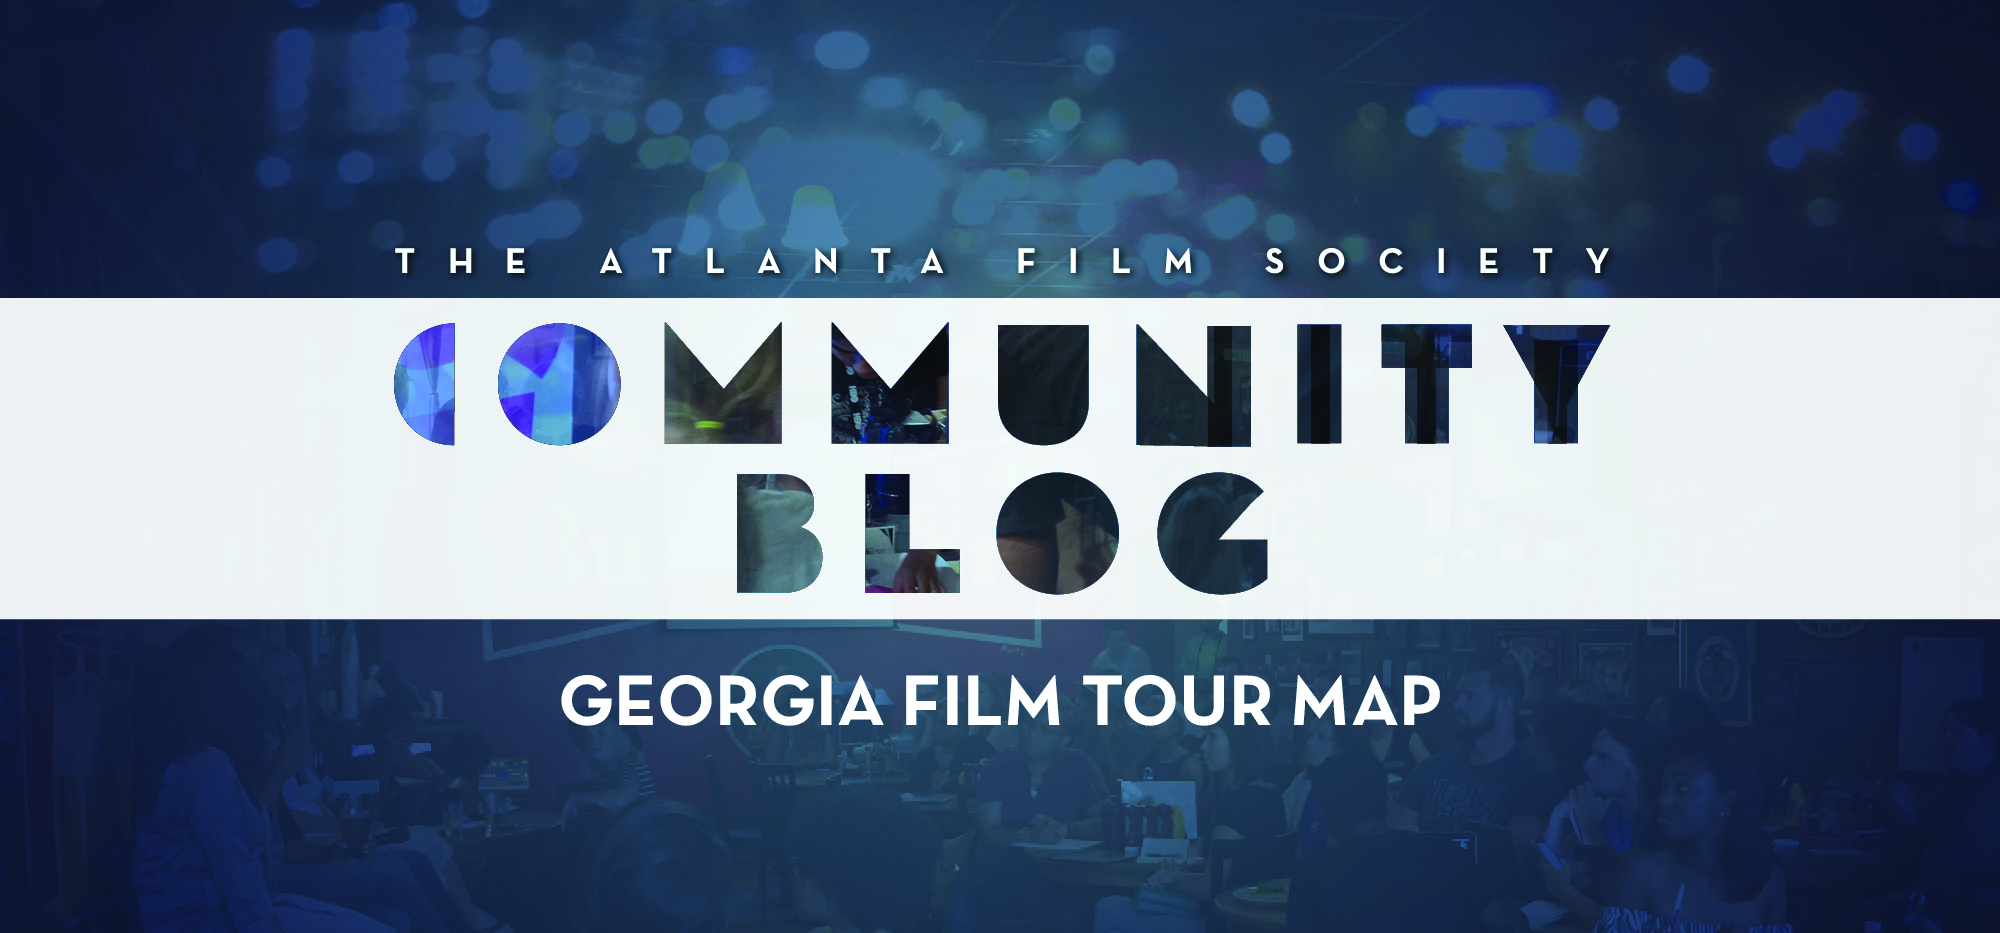 ATLFS-Community_Blog_Hero-GA_FILM_TOUR.jpg